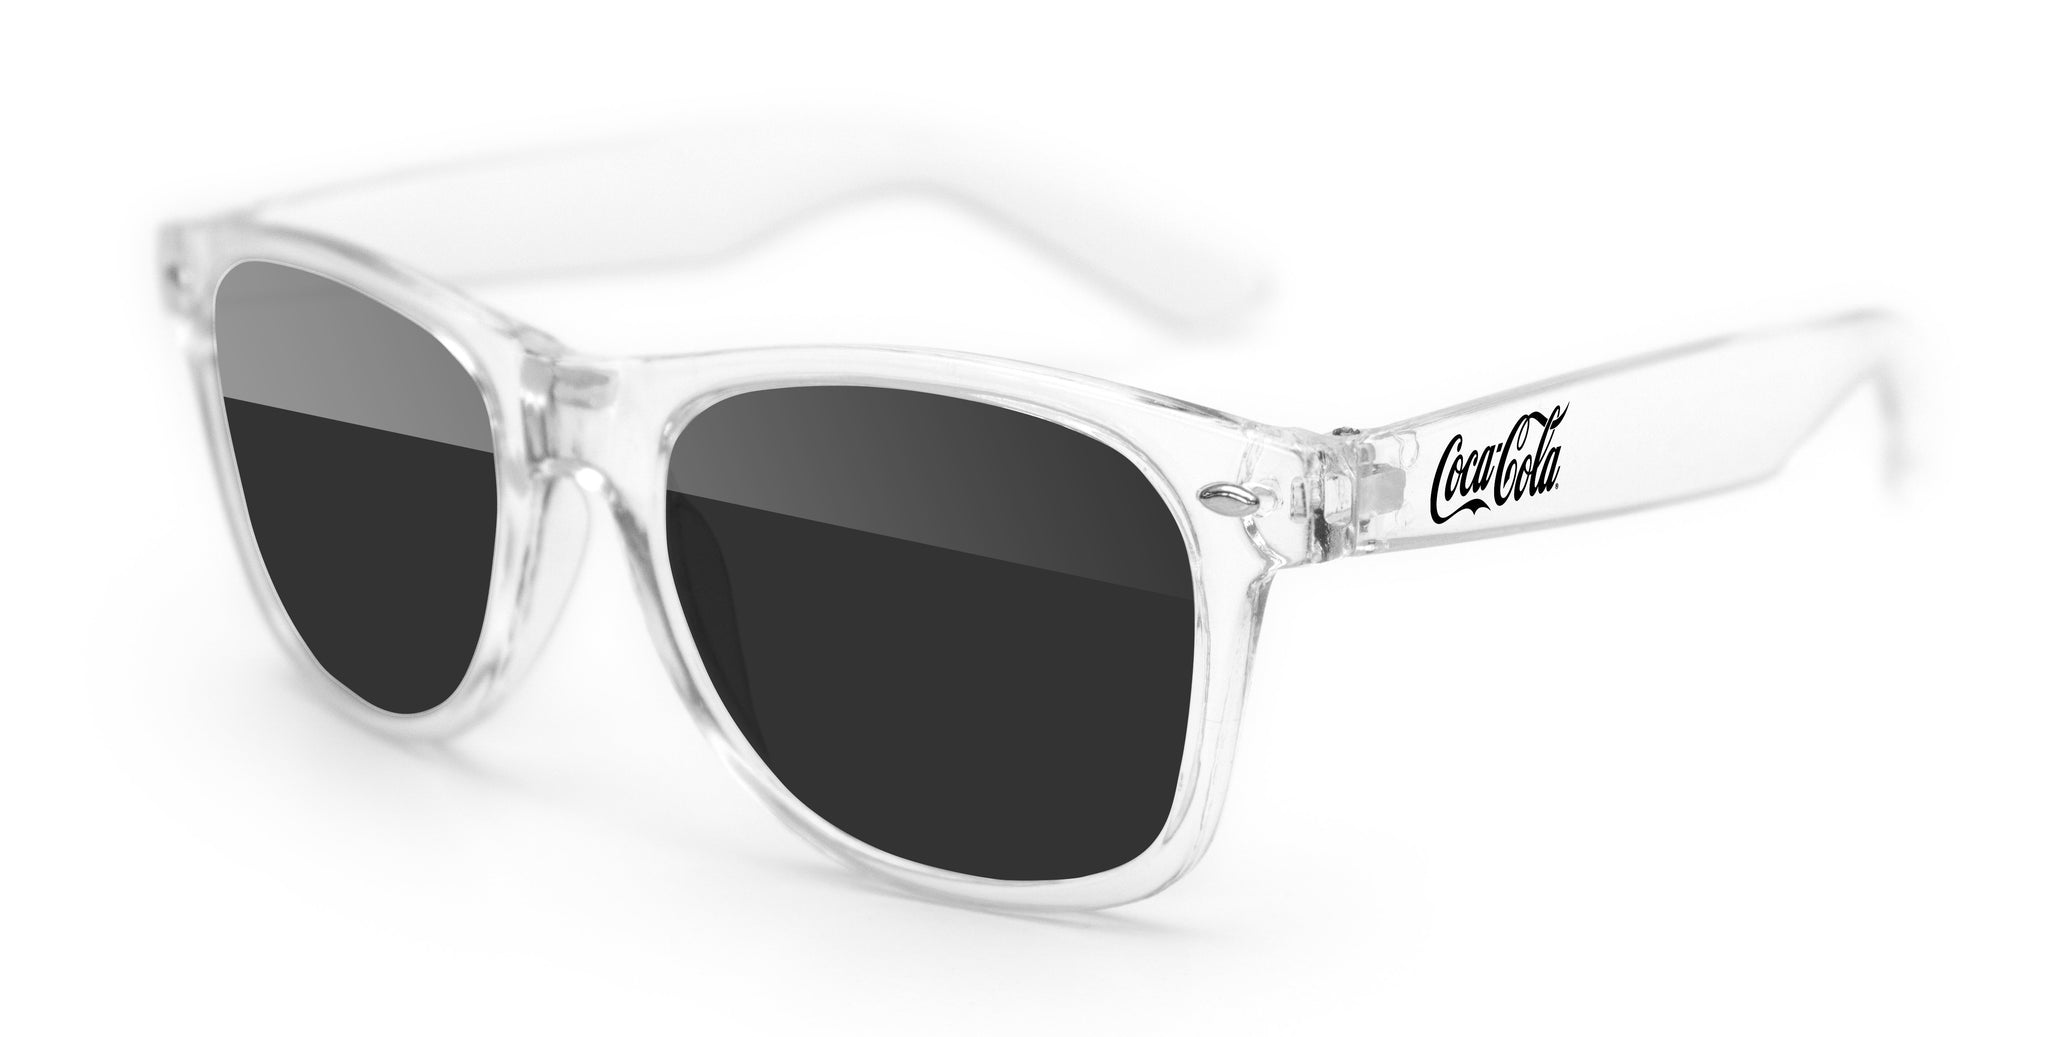 RD010-C - Clear Retro Promotional Sunglasses w/ 1-color temple imprint